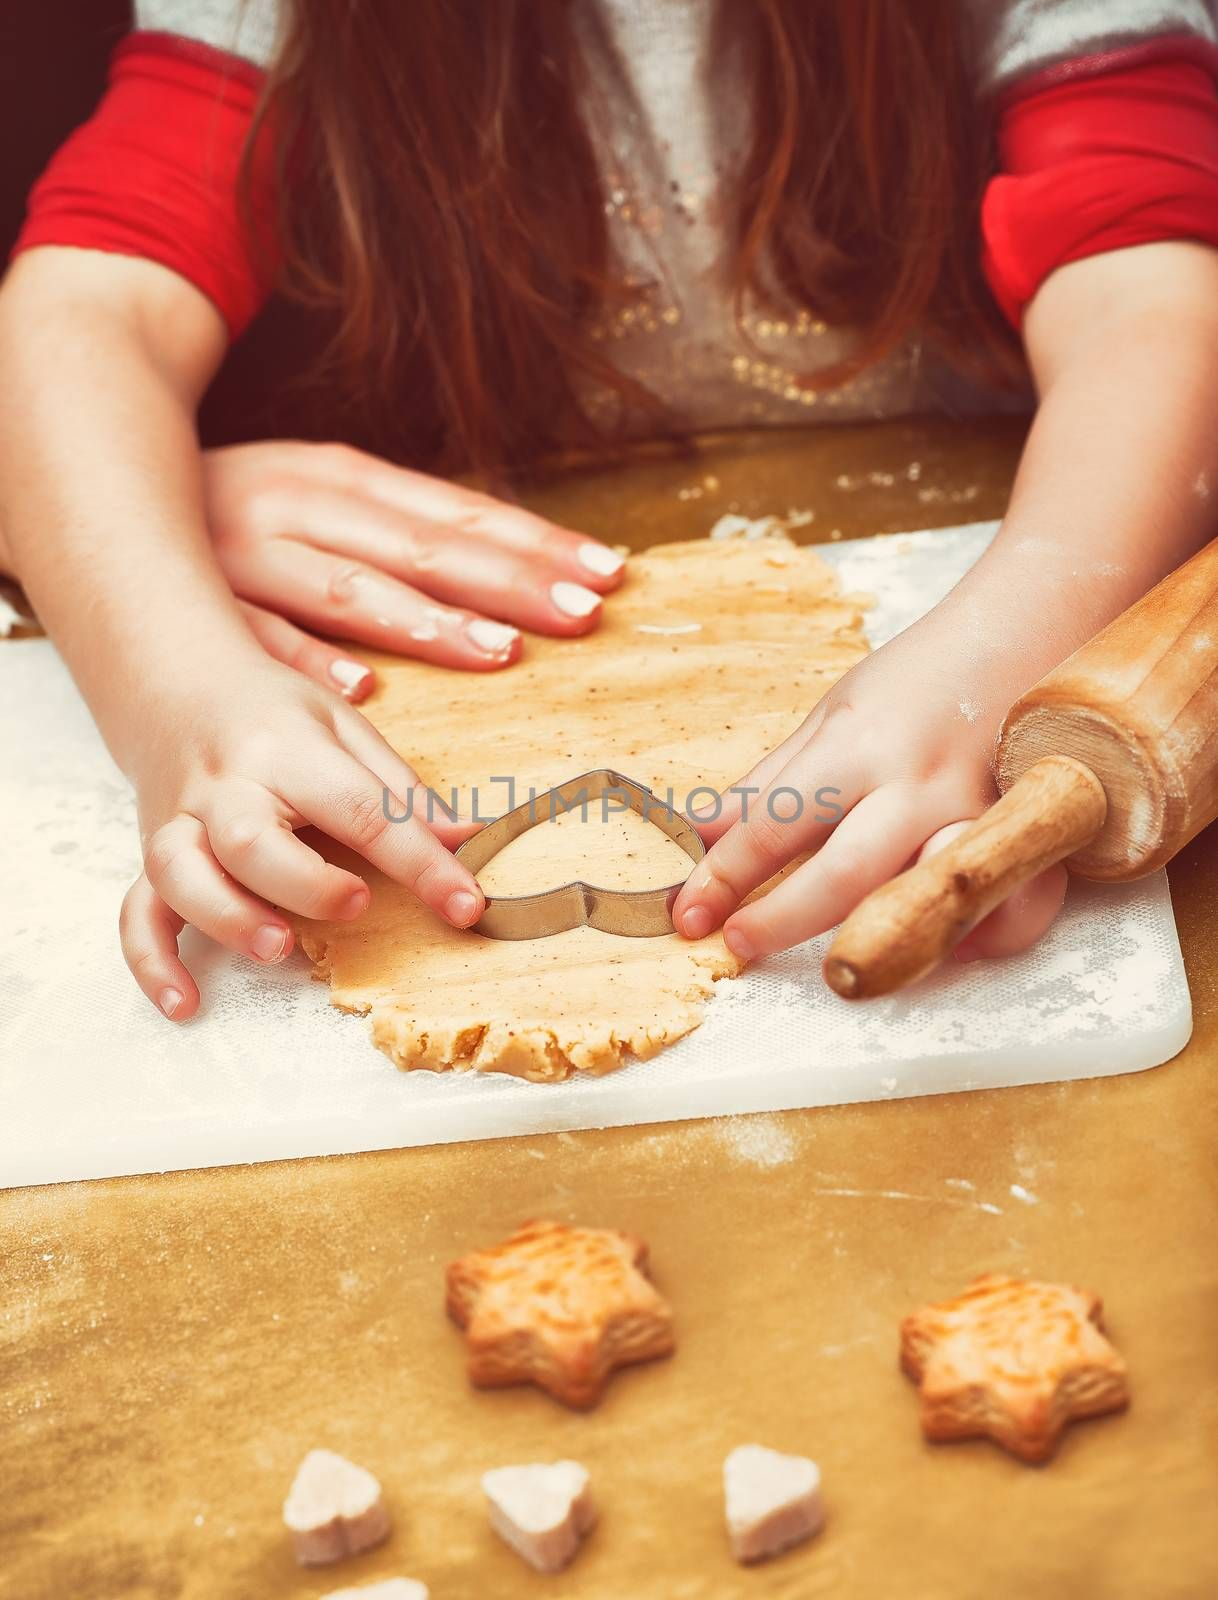 Little girl with mother's help making tasty sweet homemade cookies, gingerbread, traditional Christmas sweets, good Christmastime family tradition